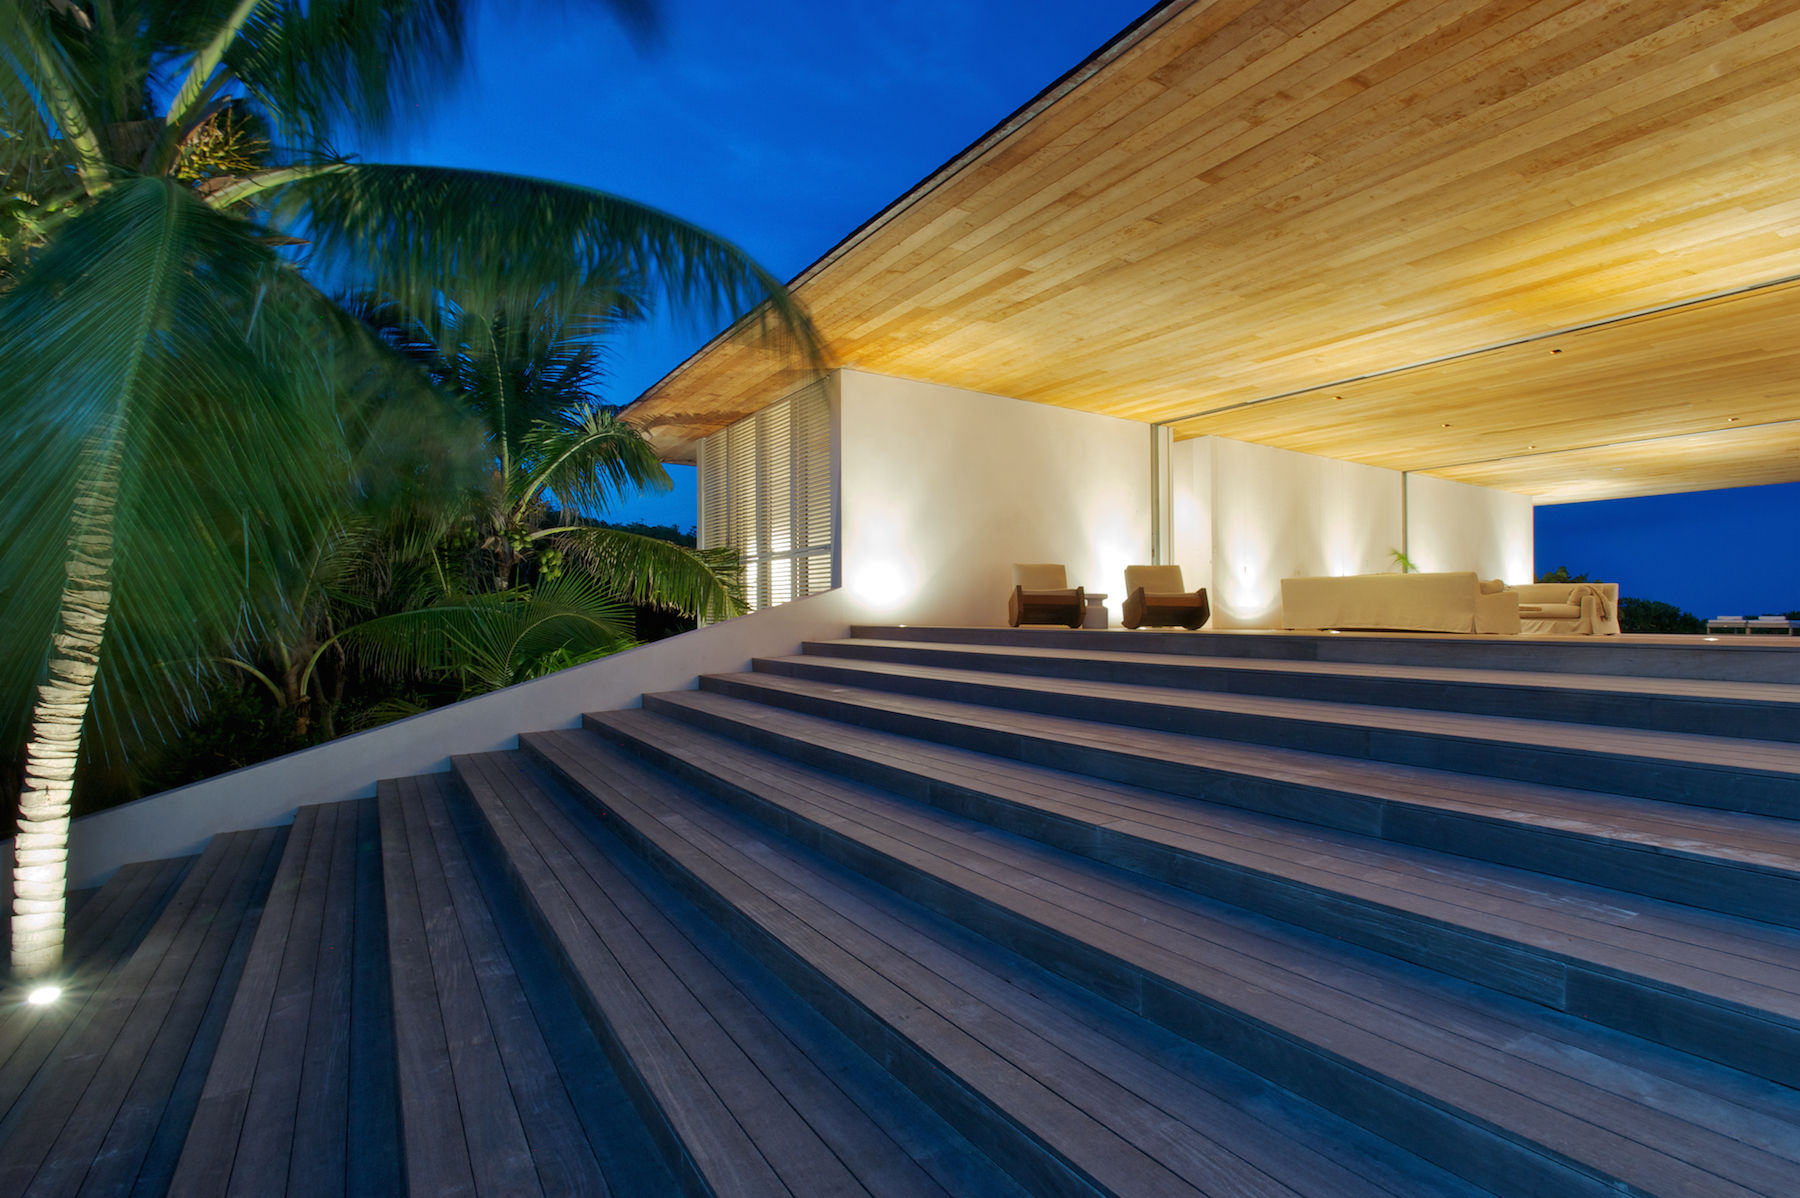 Chad Oppenheim - House on The Dunes, Bahamas